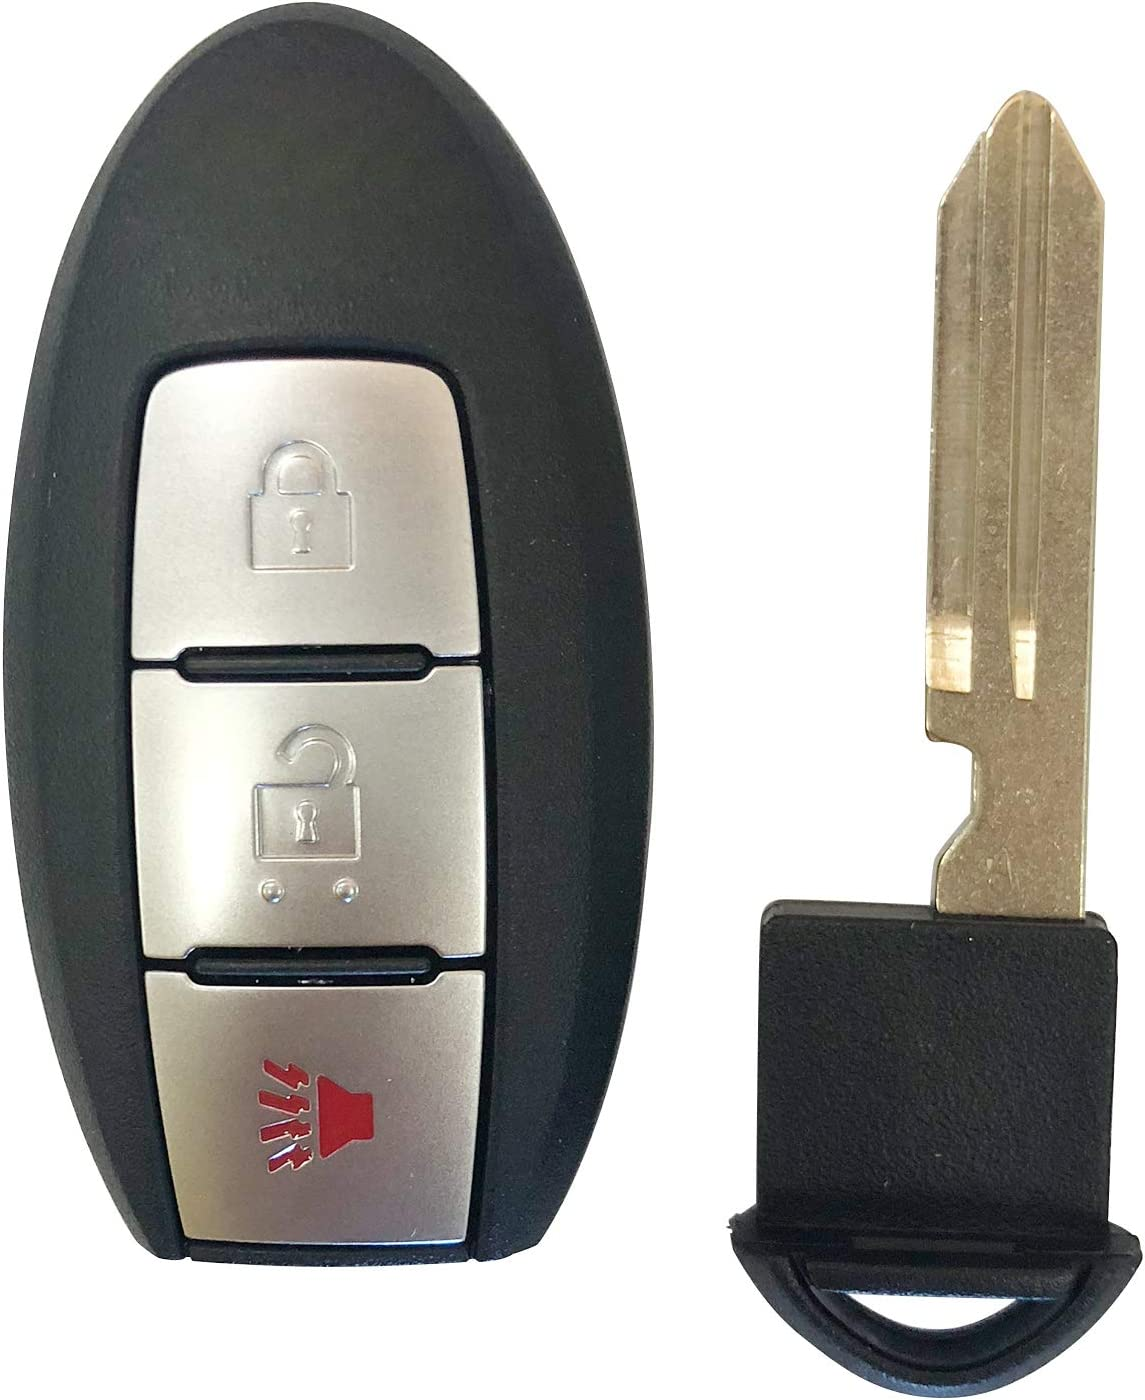 Replacement Key for 2013-2015 Toyota Rav4 2014-2016 Prius C V Remote Fob H Chip New Uncut Blade; by AutoKeyMax